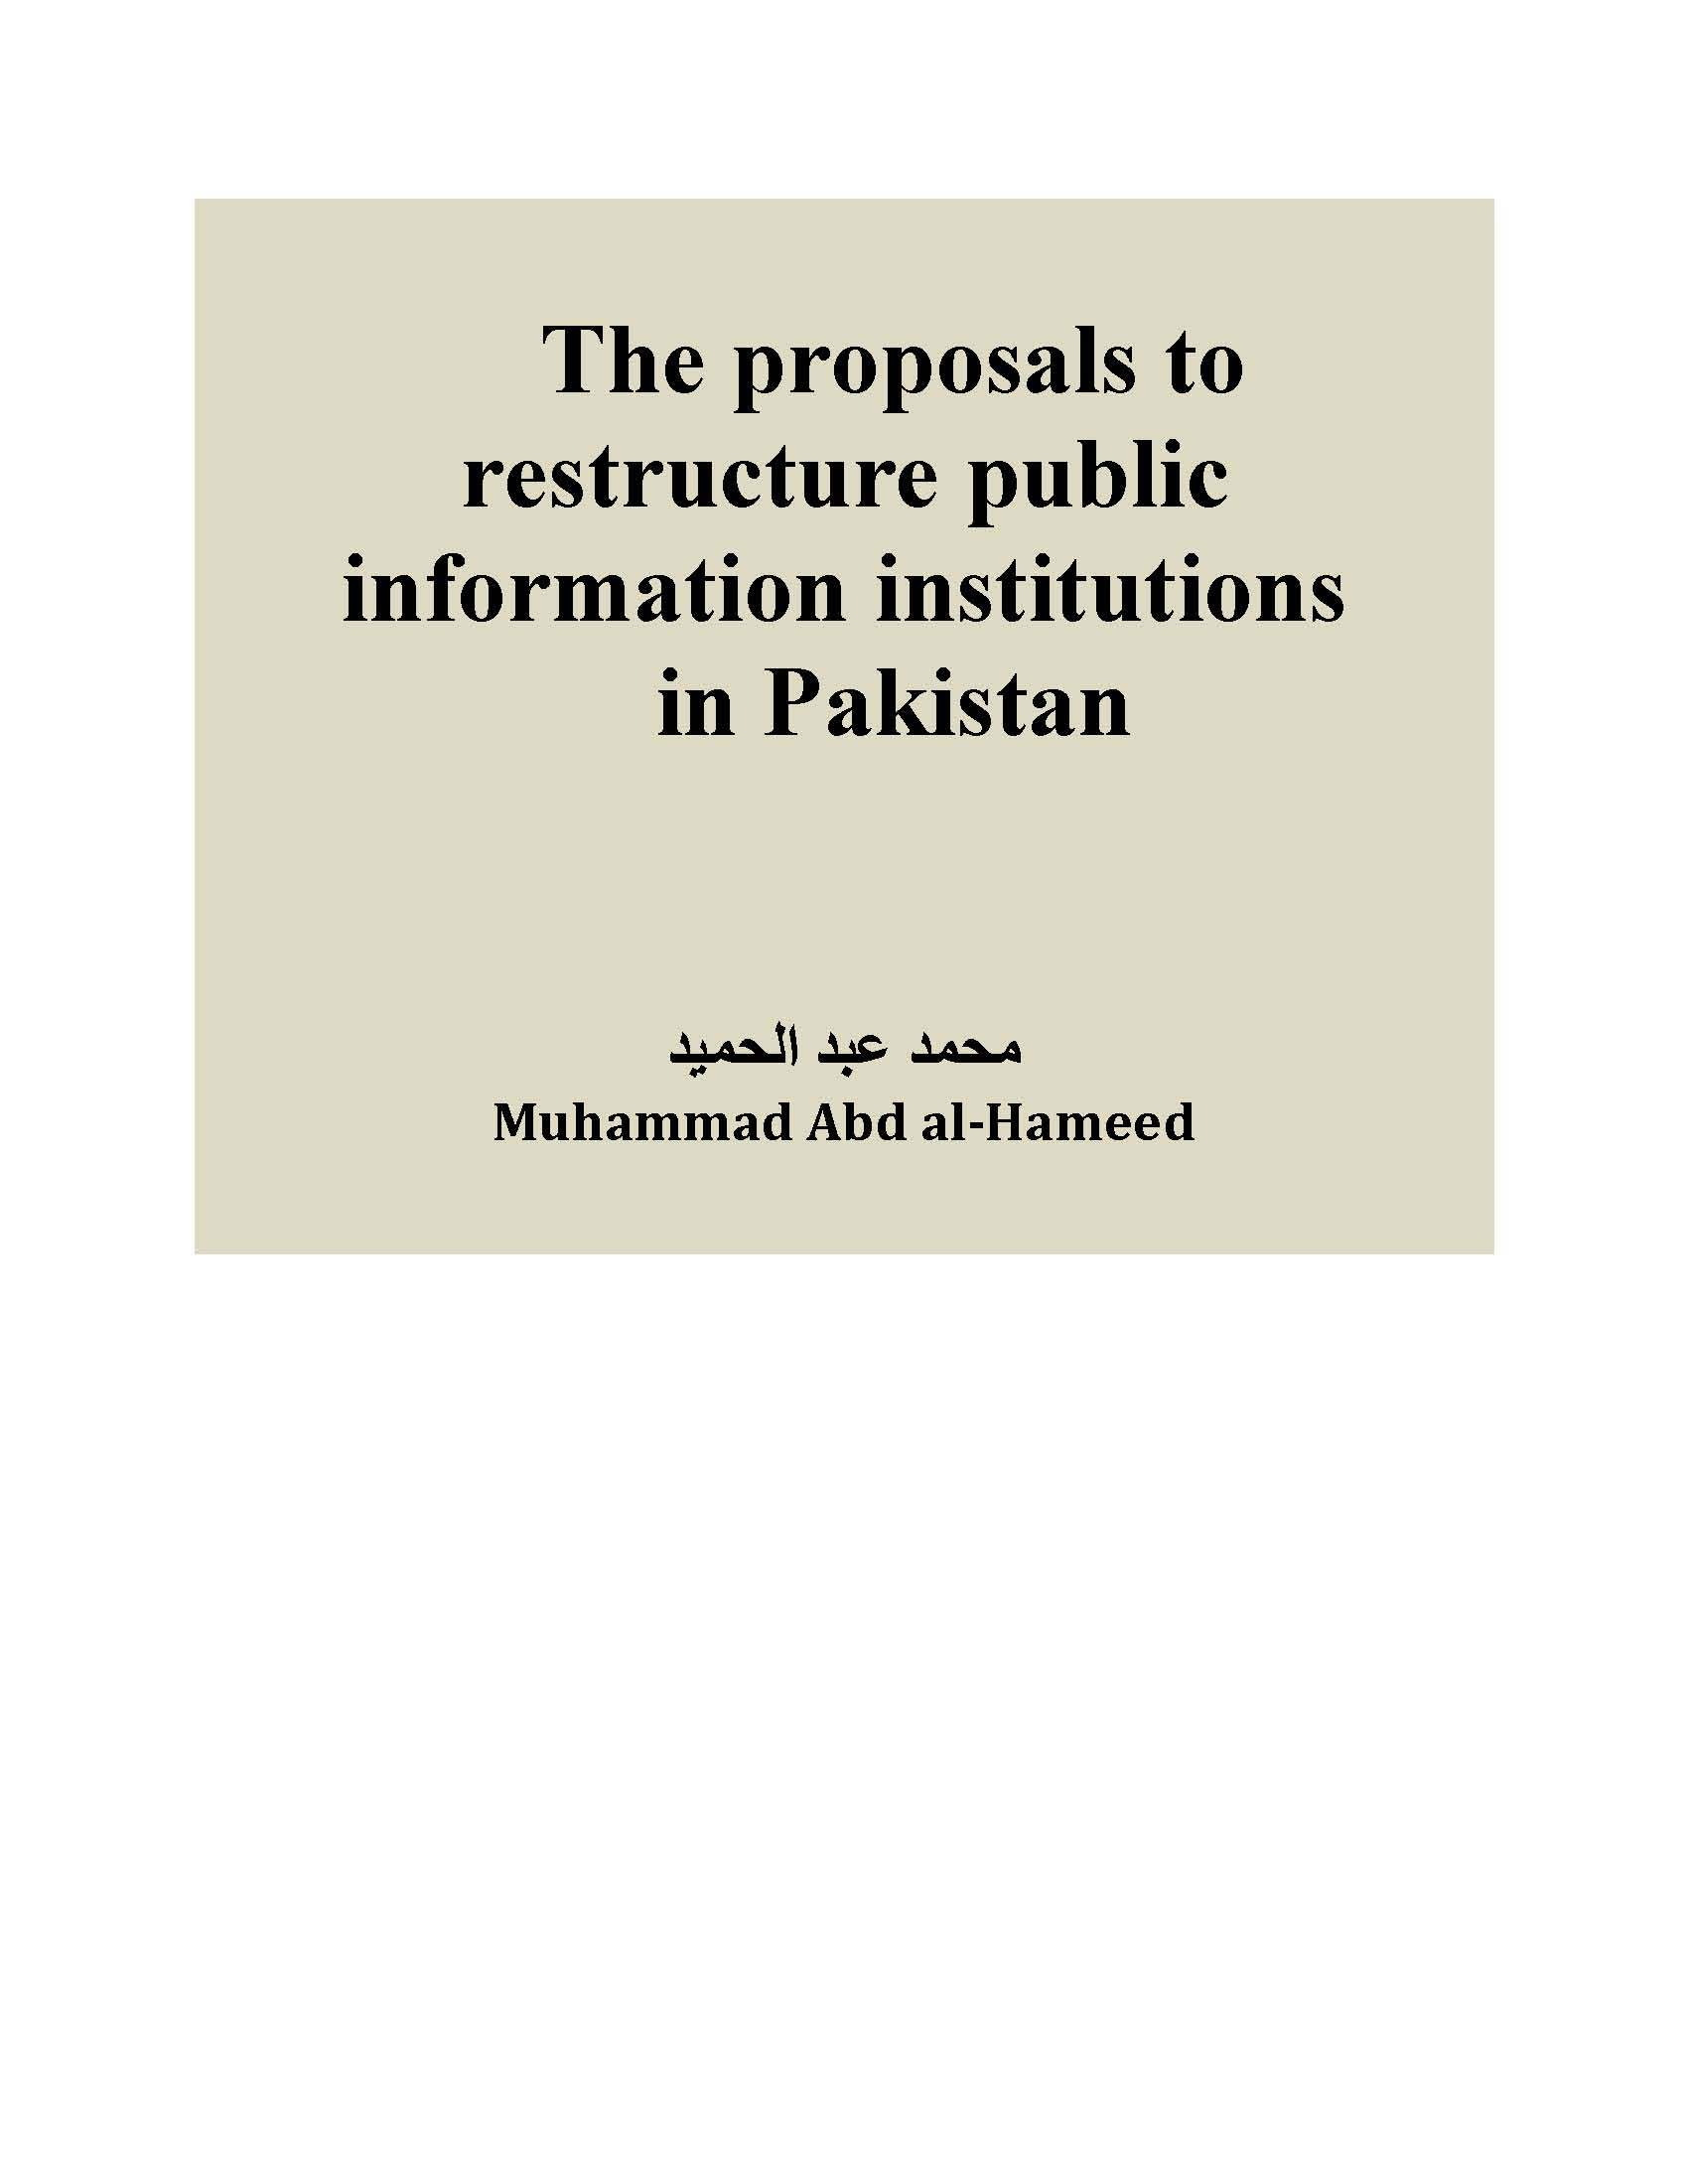 The proposals to restructure public information institutions in Pakistan By: Muhammad Abd al-Hameed